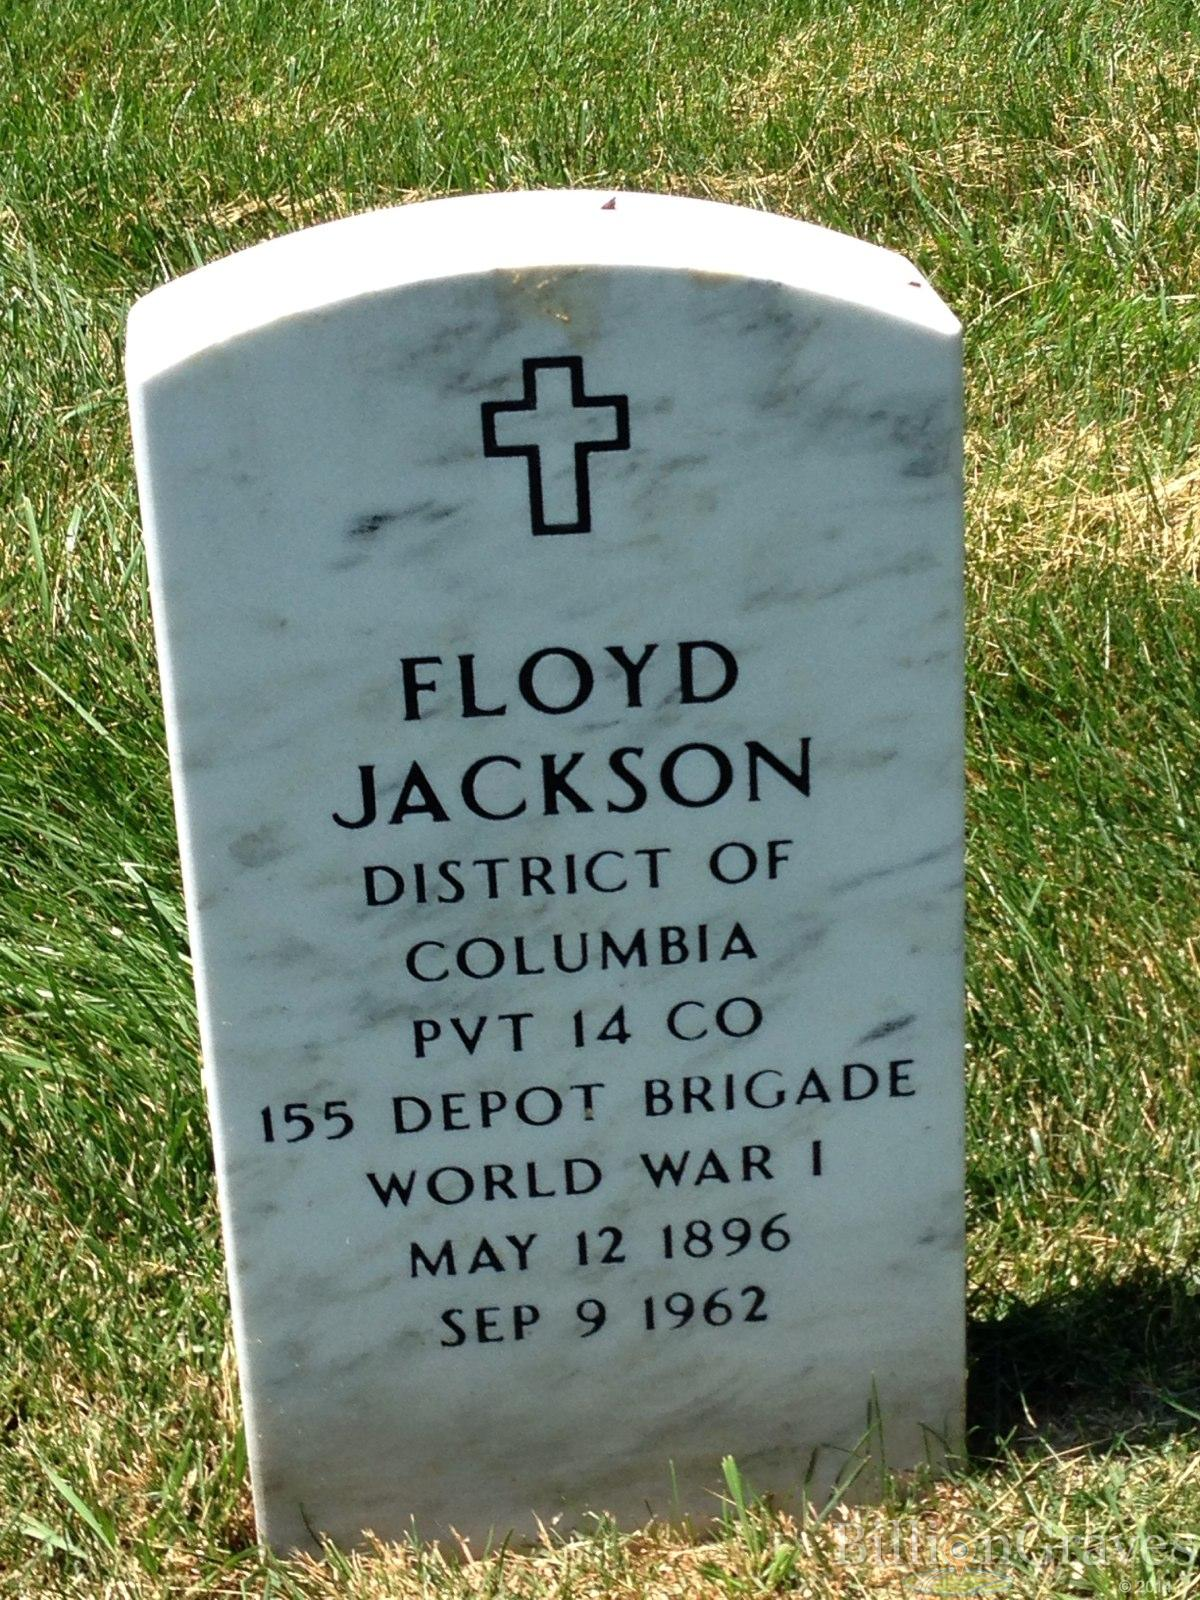 grave site of floyd jackson 1896 1962 billiongraves headstone image of floyd jackson